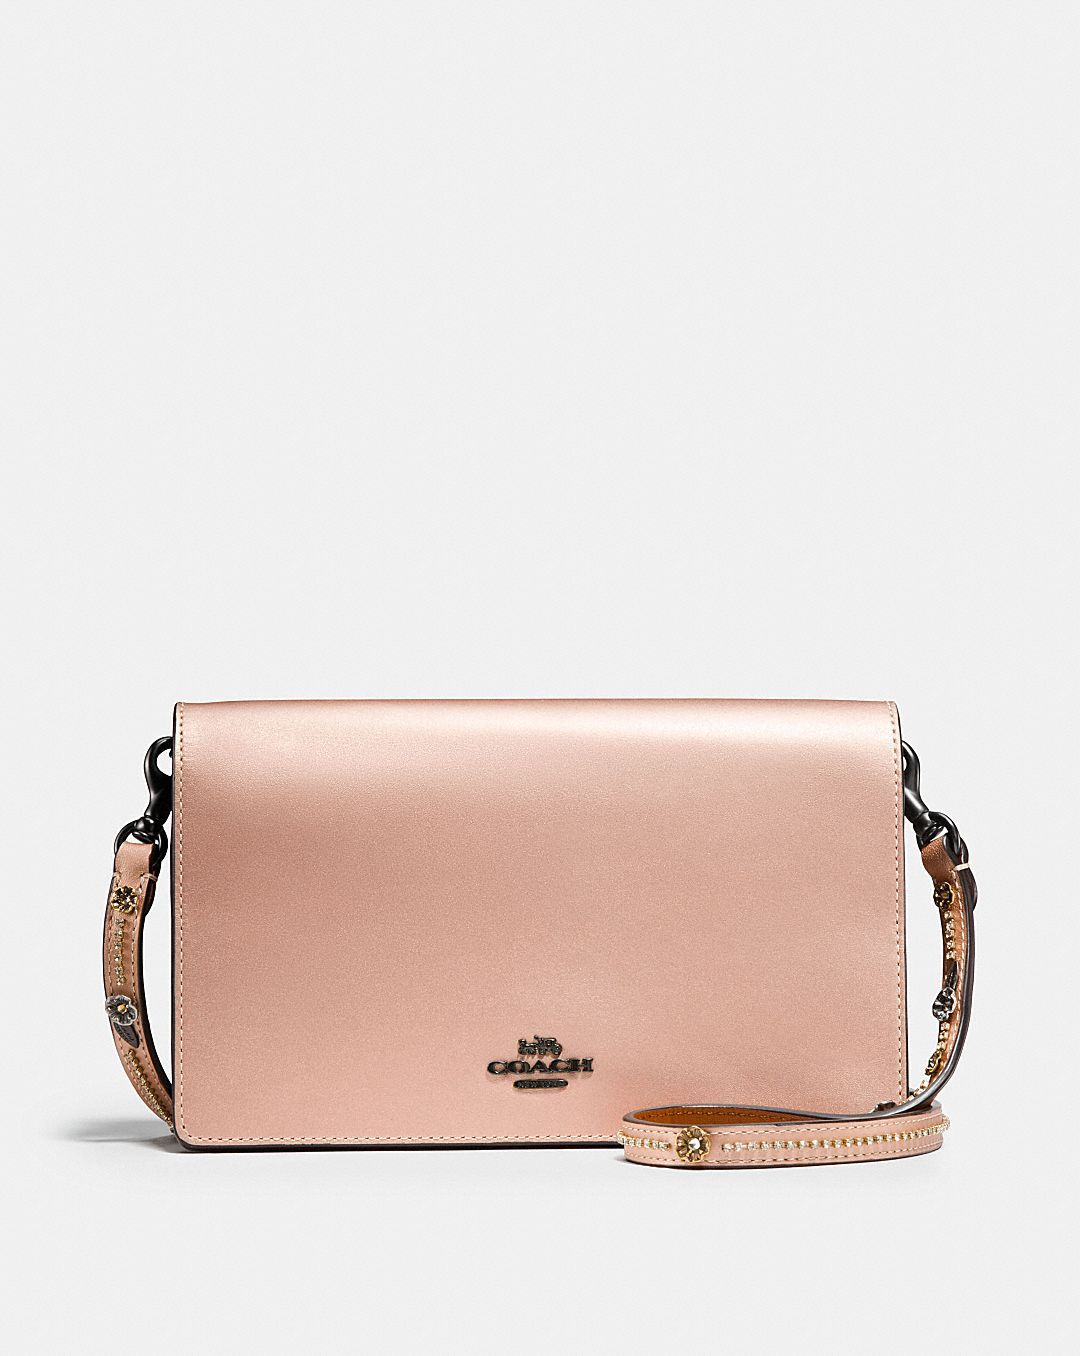 0a7477be6134f FOLDOVER CHAIN CLUTCH WITH TEA ROSE